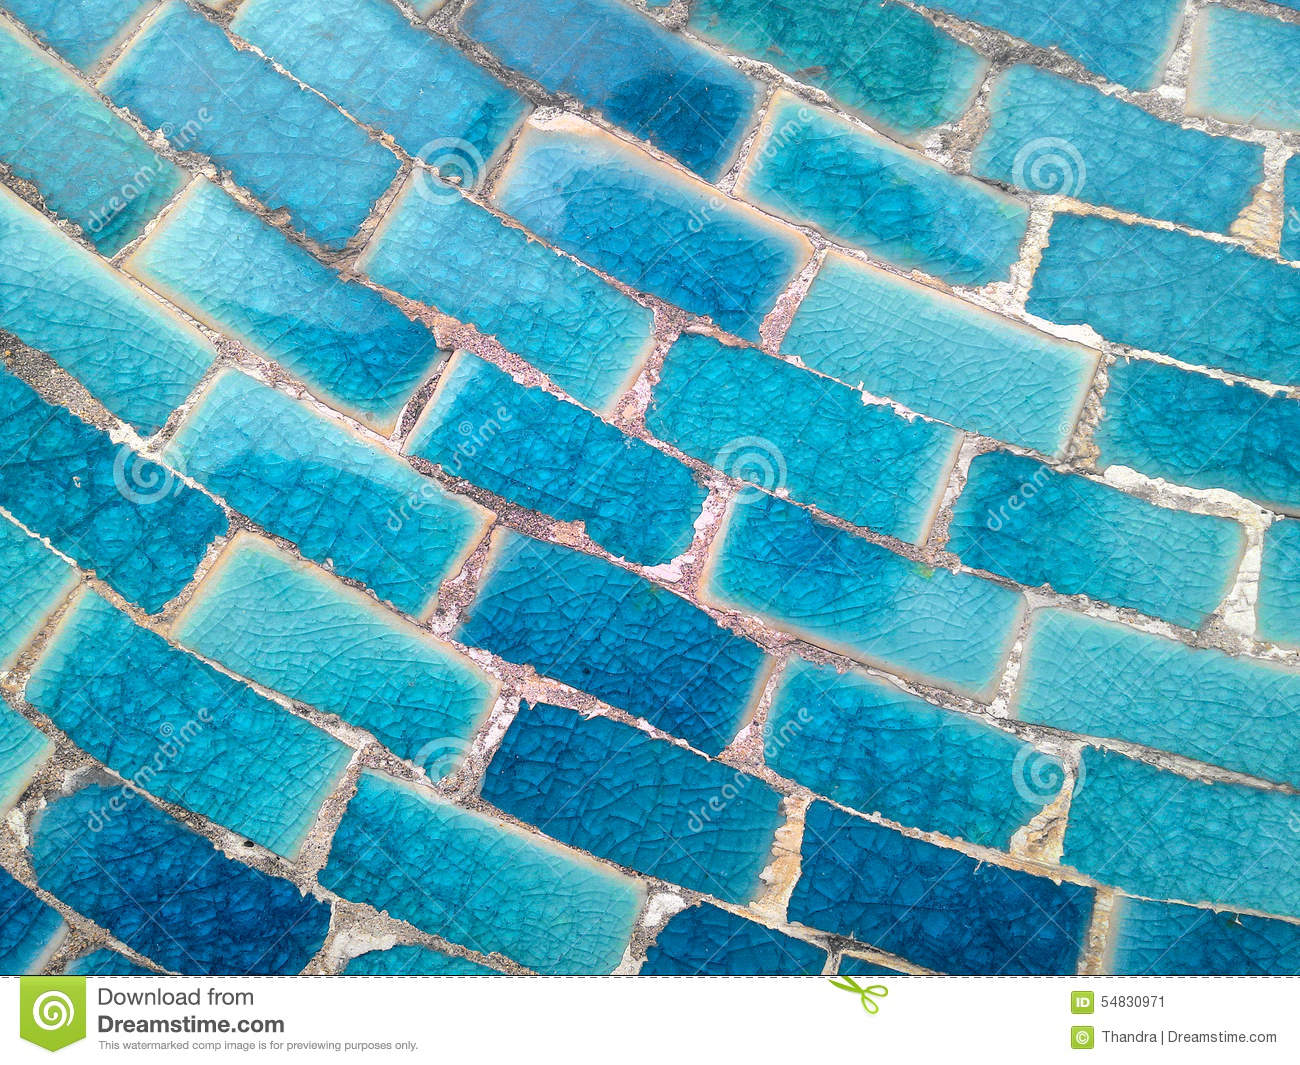 Colorful Ceramic Tile Patterns Background Stock Image - Image of ...